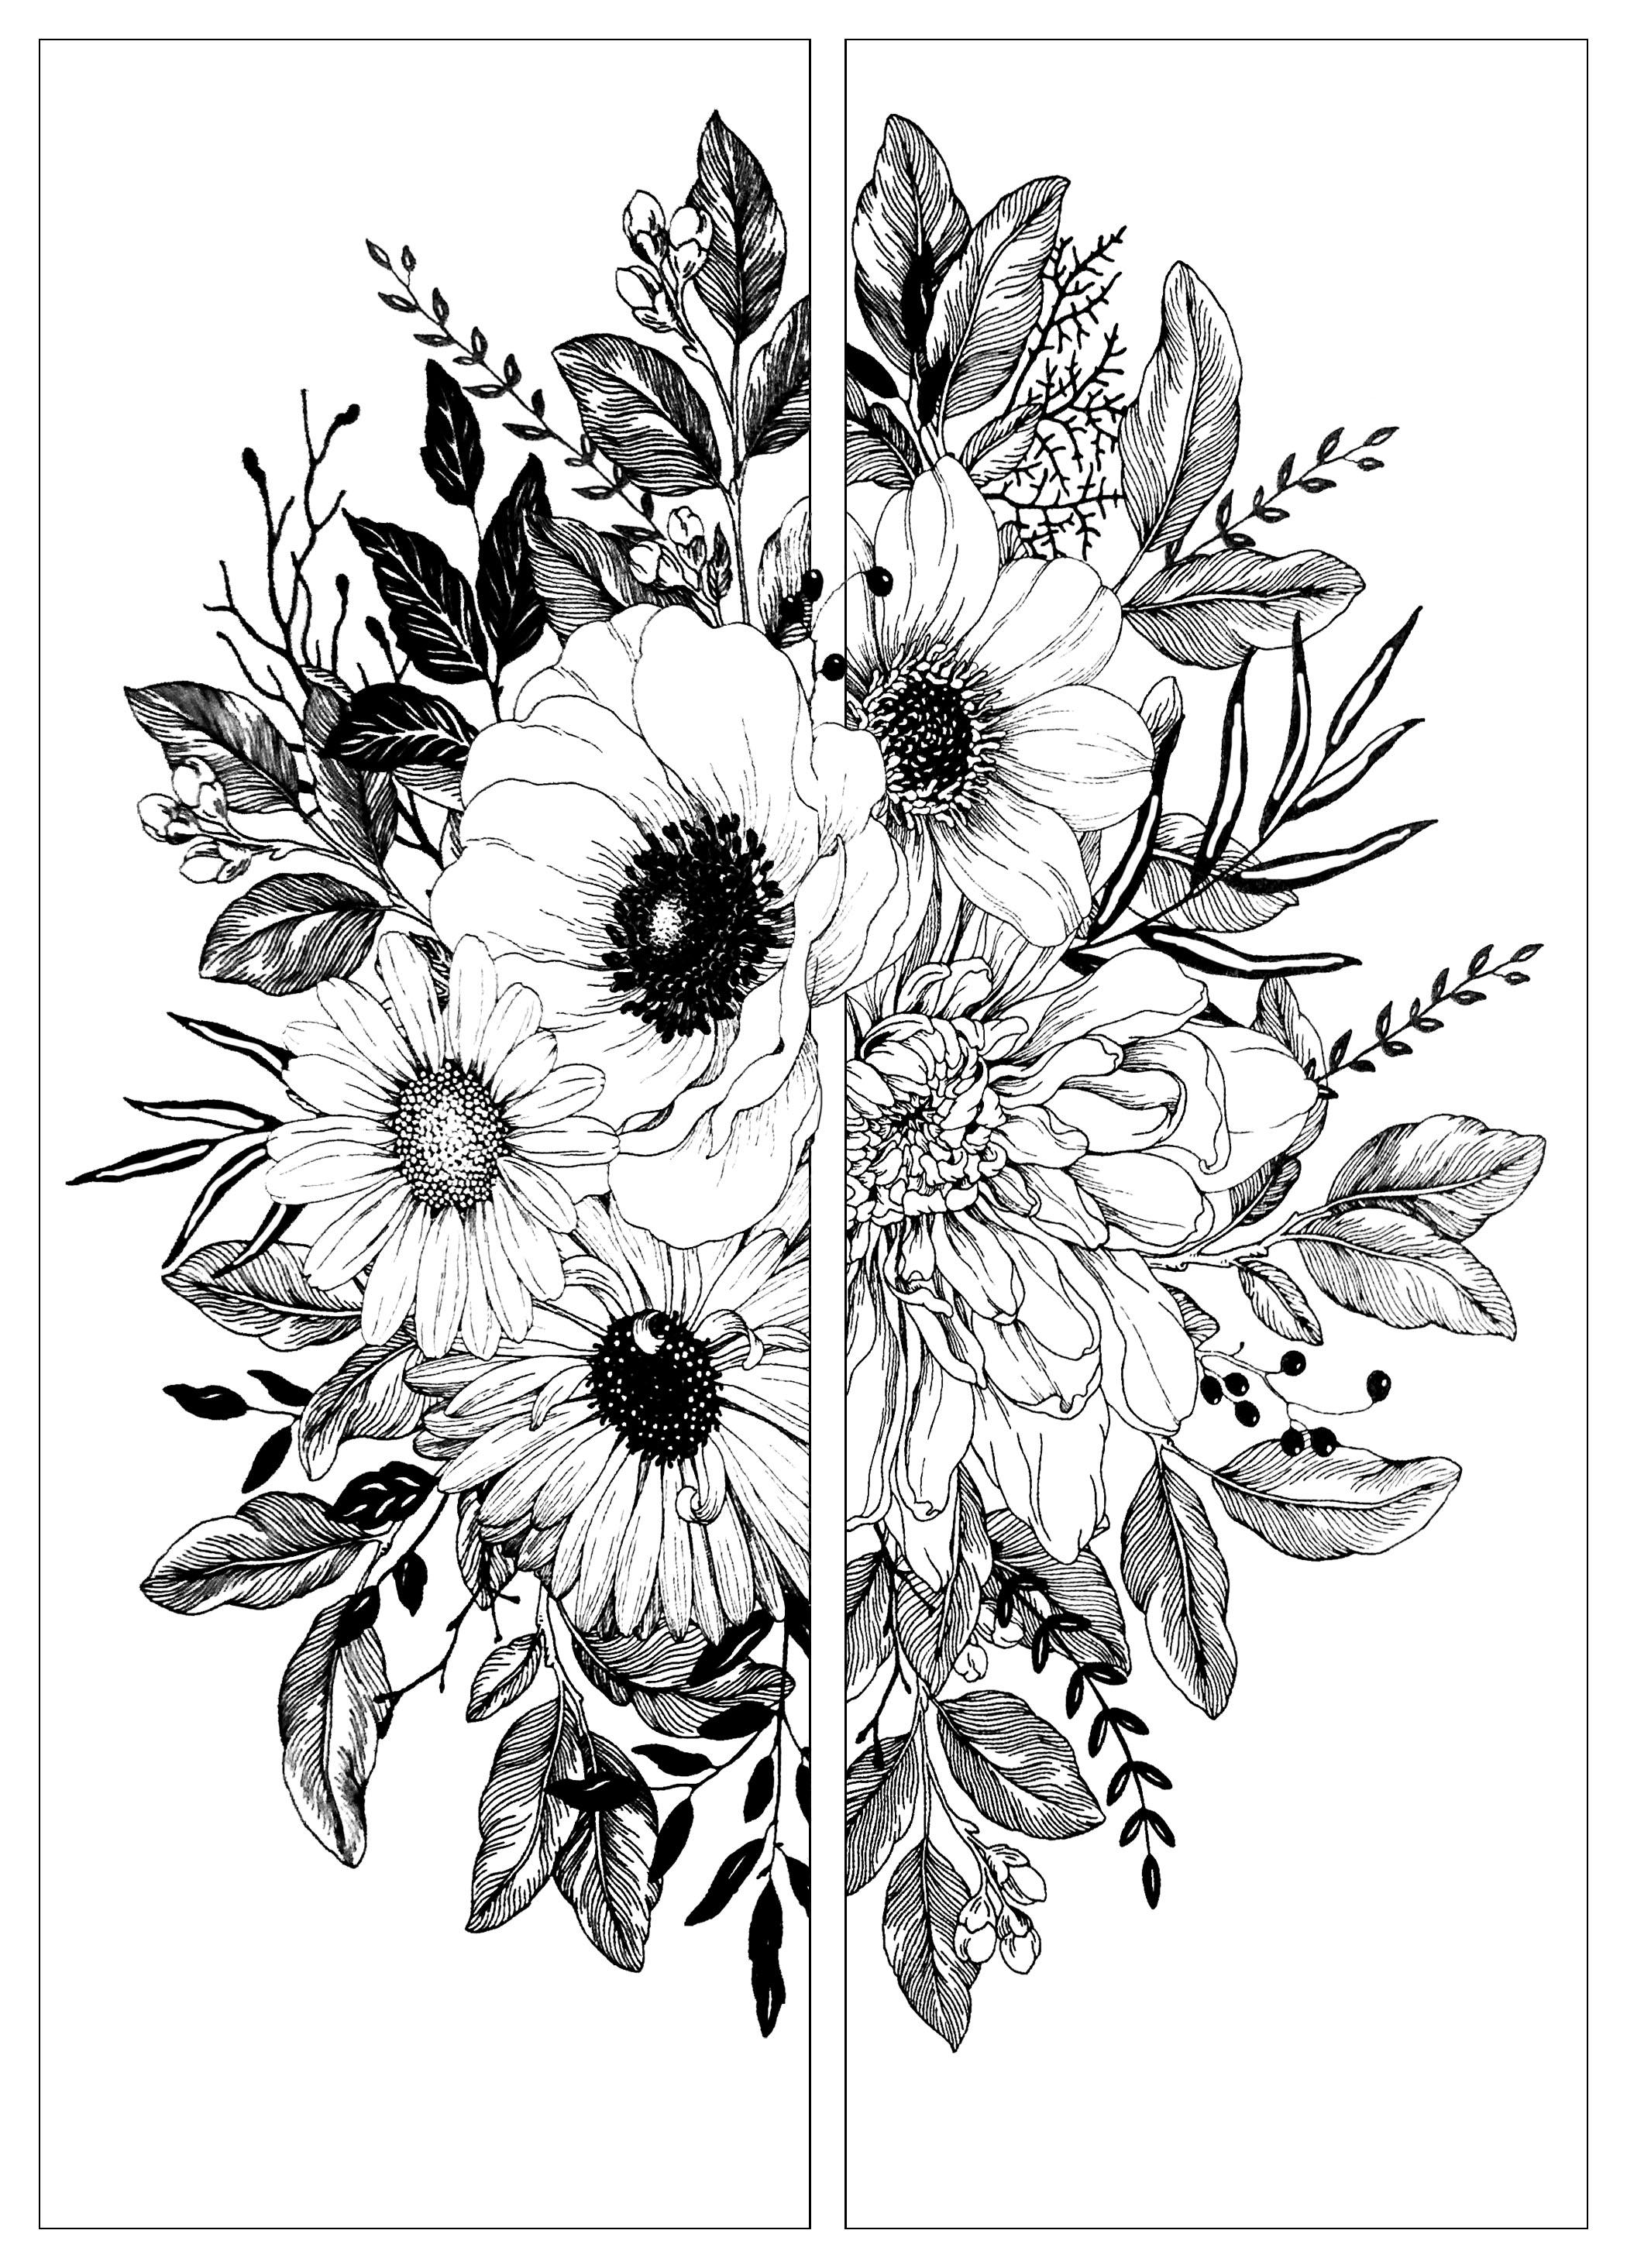 Color these pretty spring flowers in this two-part design